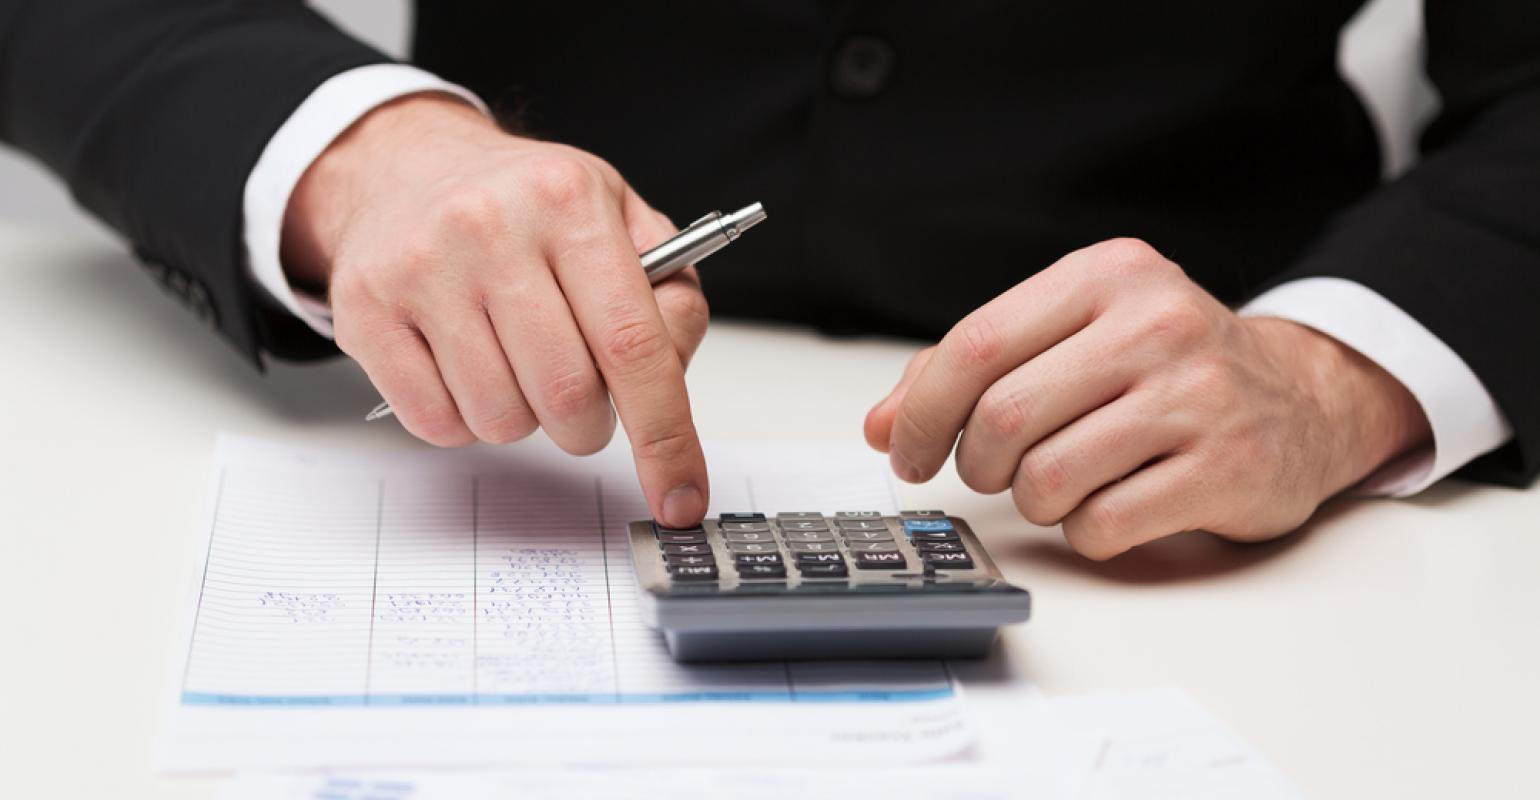 How to get rid of debts